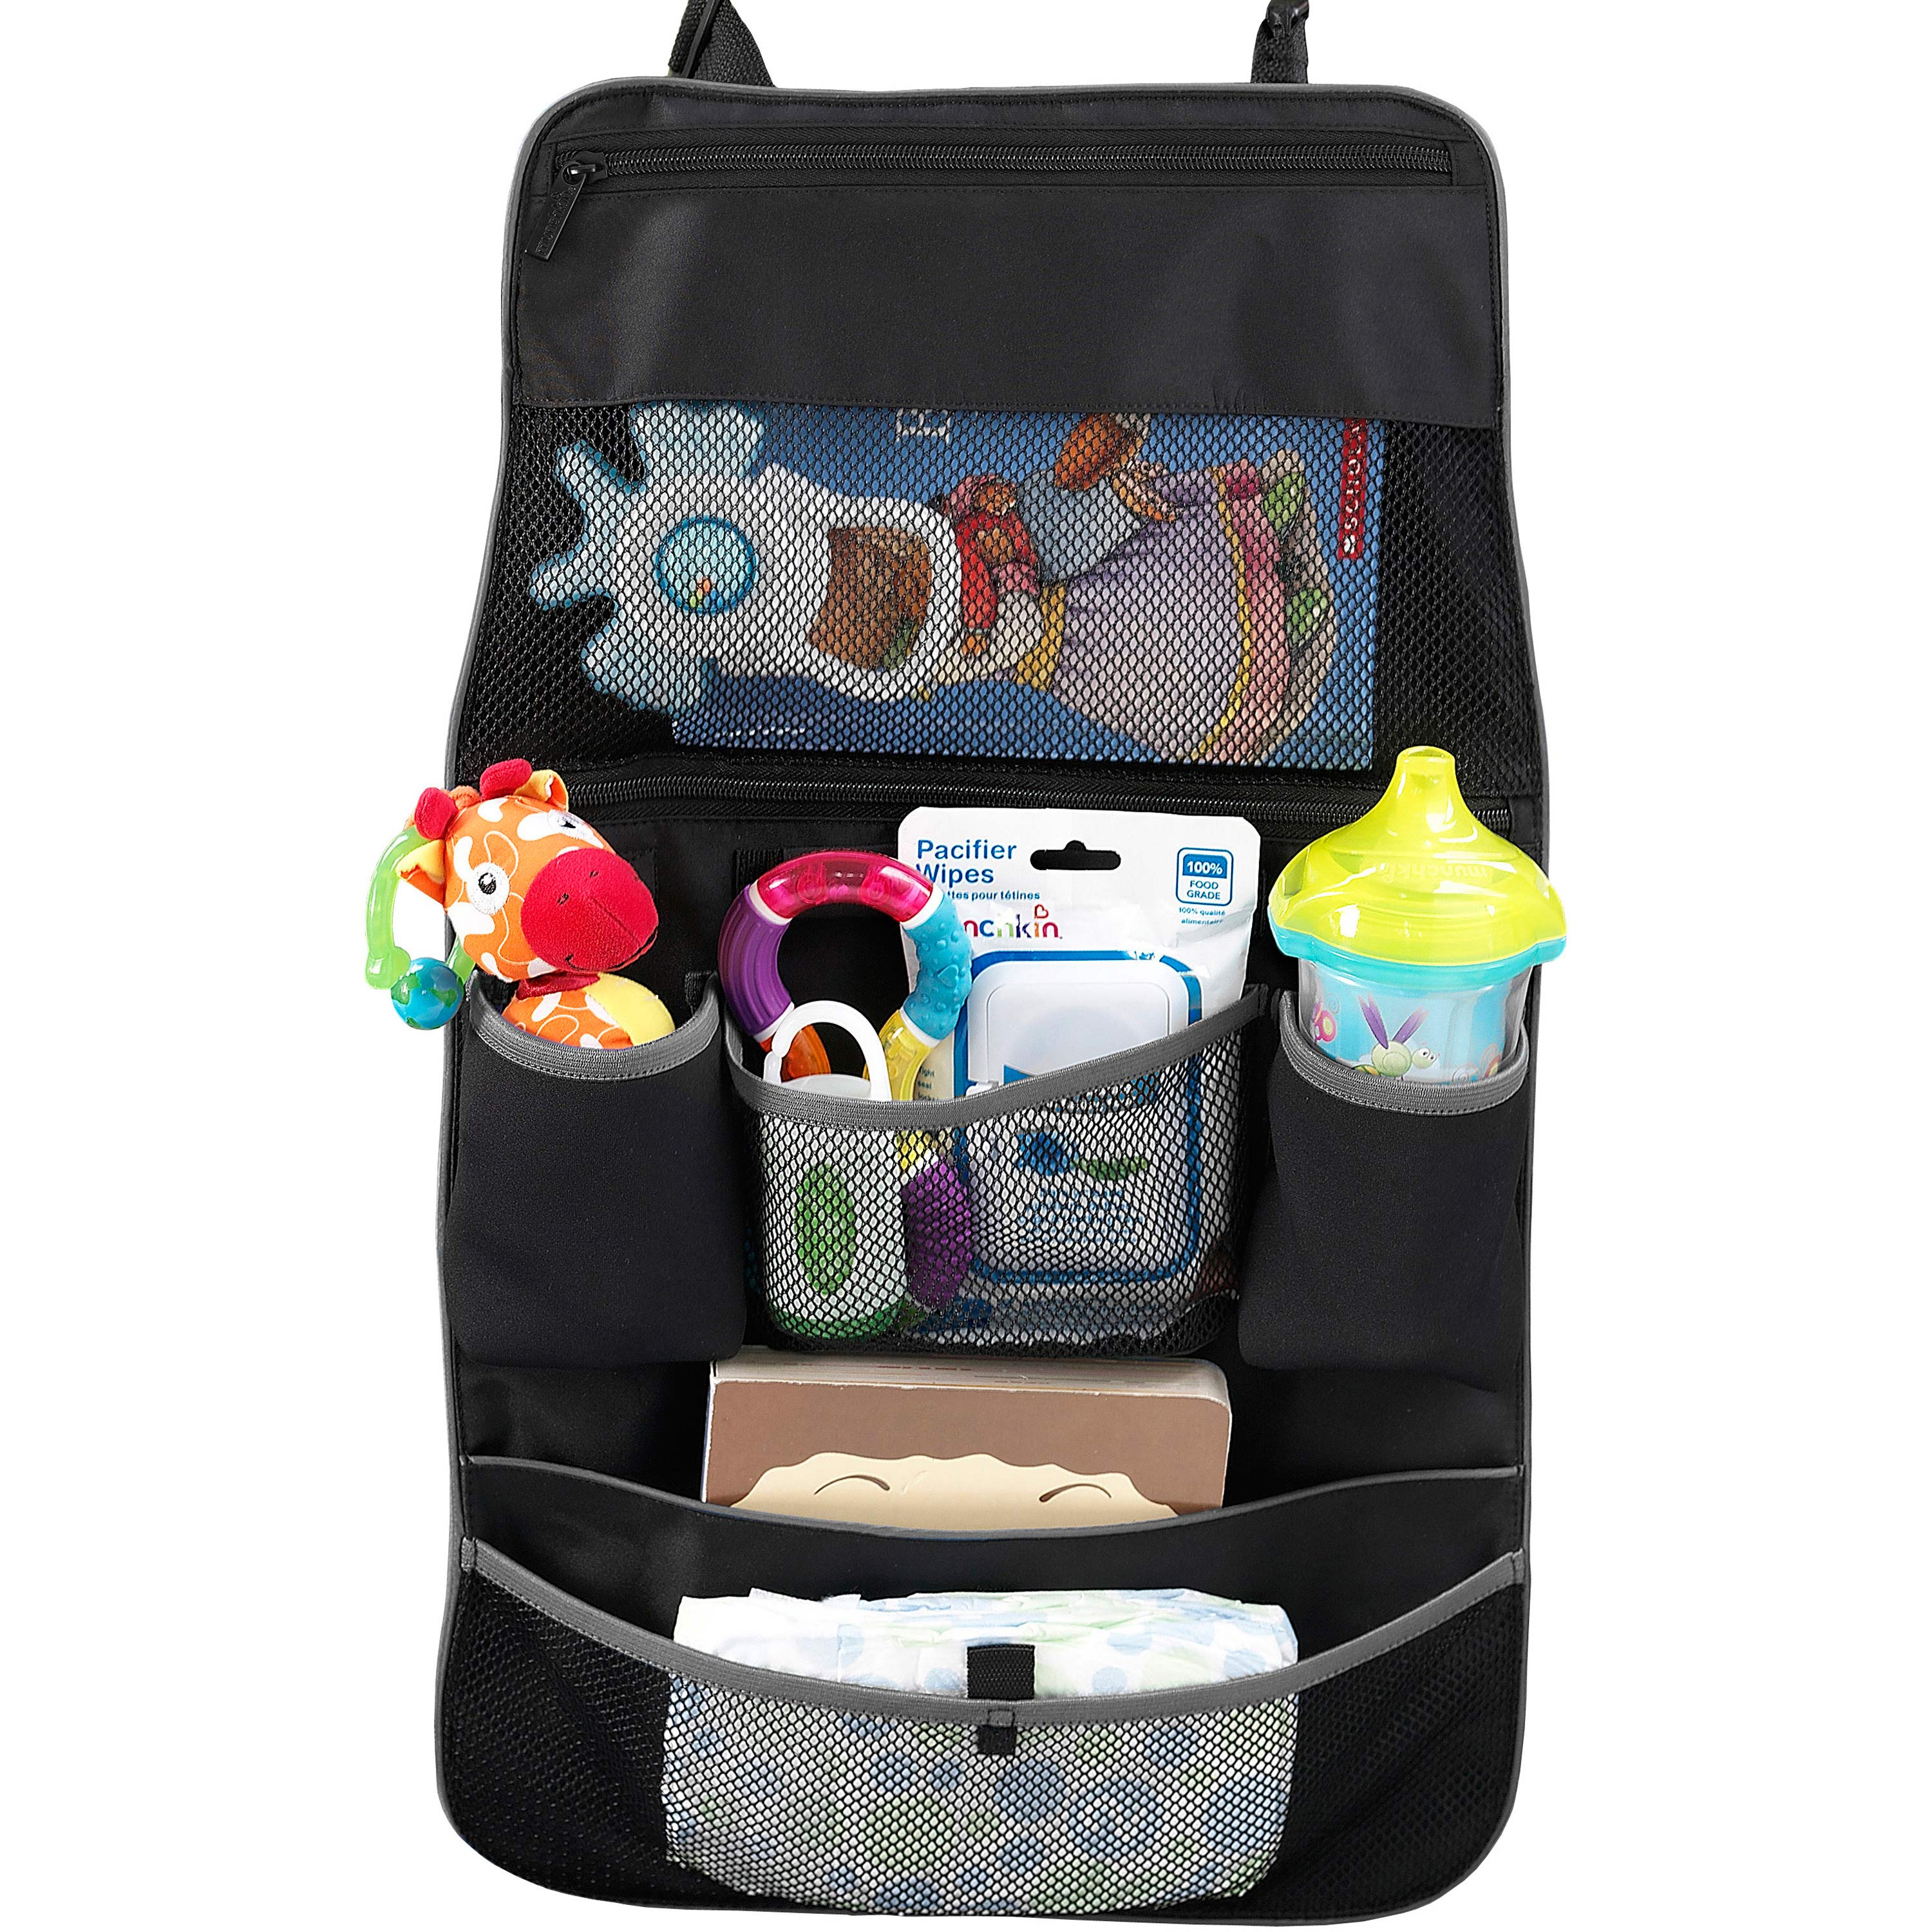 SafeFit Backseat and Stroller Organizer